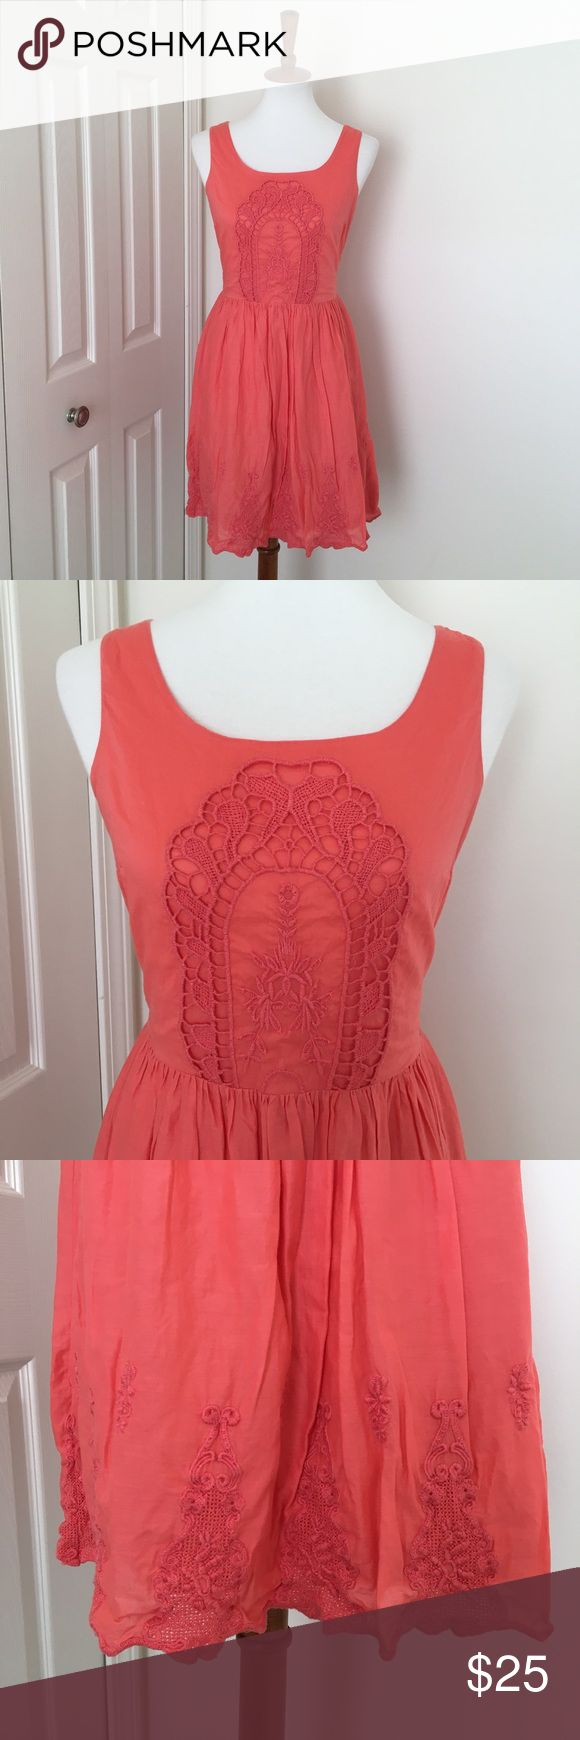 🆕Embroidered coral sundress Beautiful coral colored sundress with crocheted and embroidery detailing on the front and along the hem. Hidden back zipper. Excellent condition! NO TRADES! Old Navy Dresses